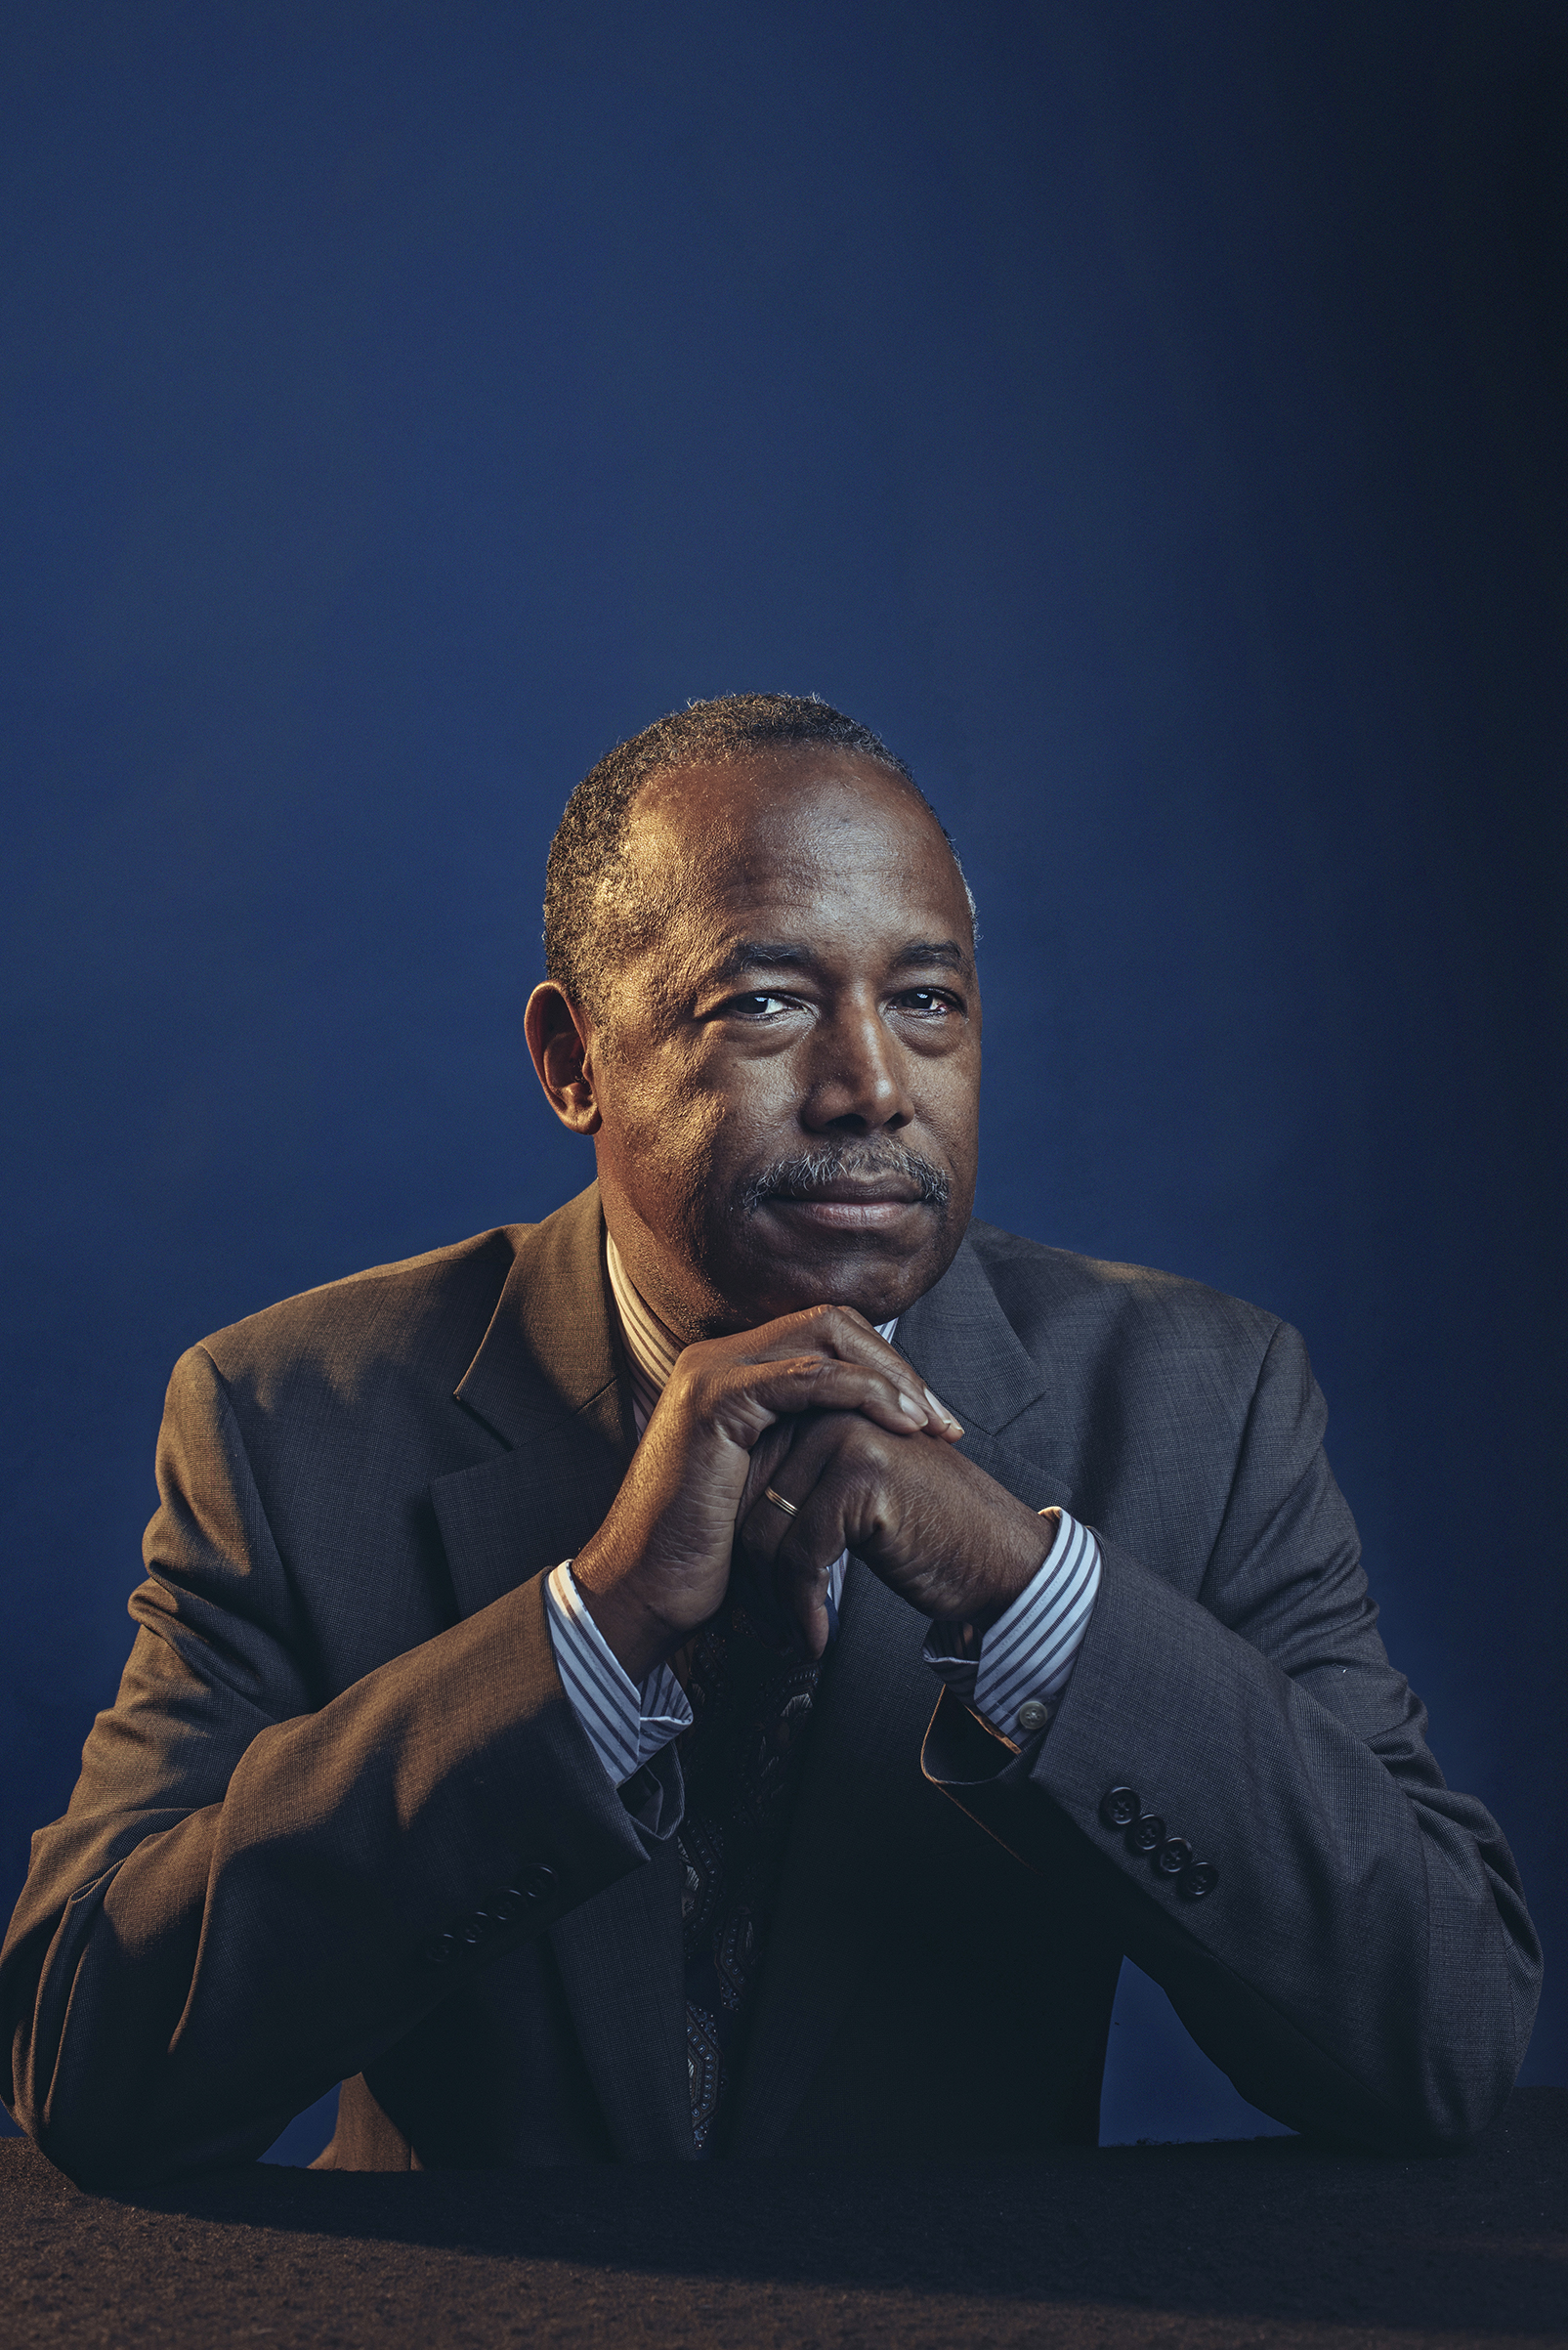 Carson says,  success is not how many people we get into public housing, but how many we get out.